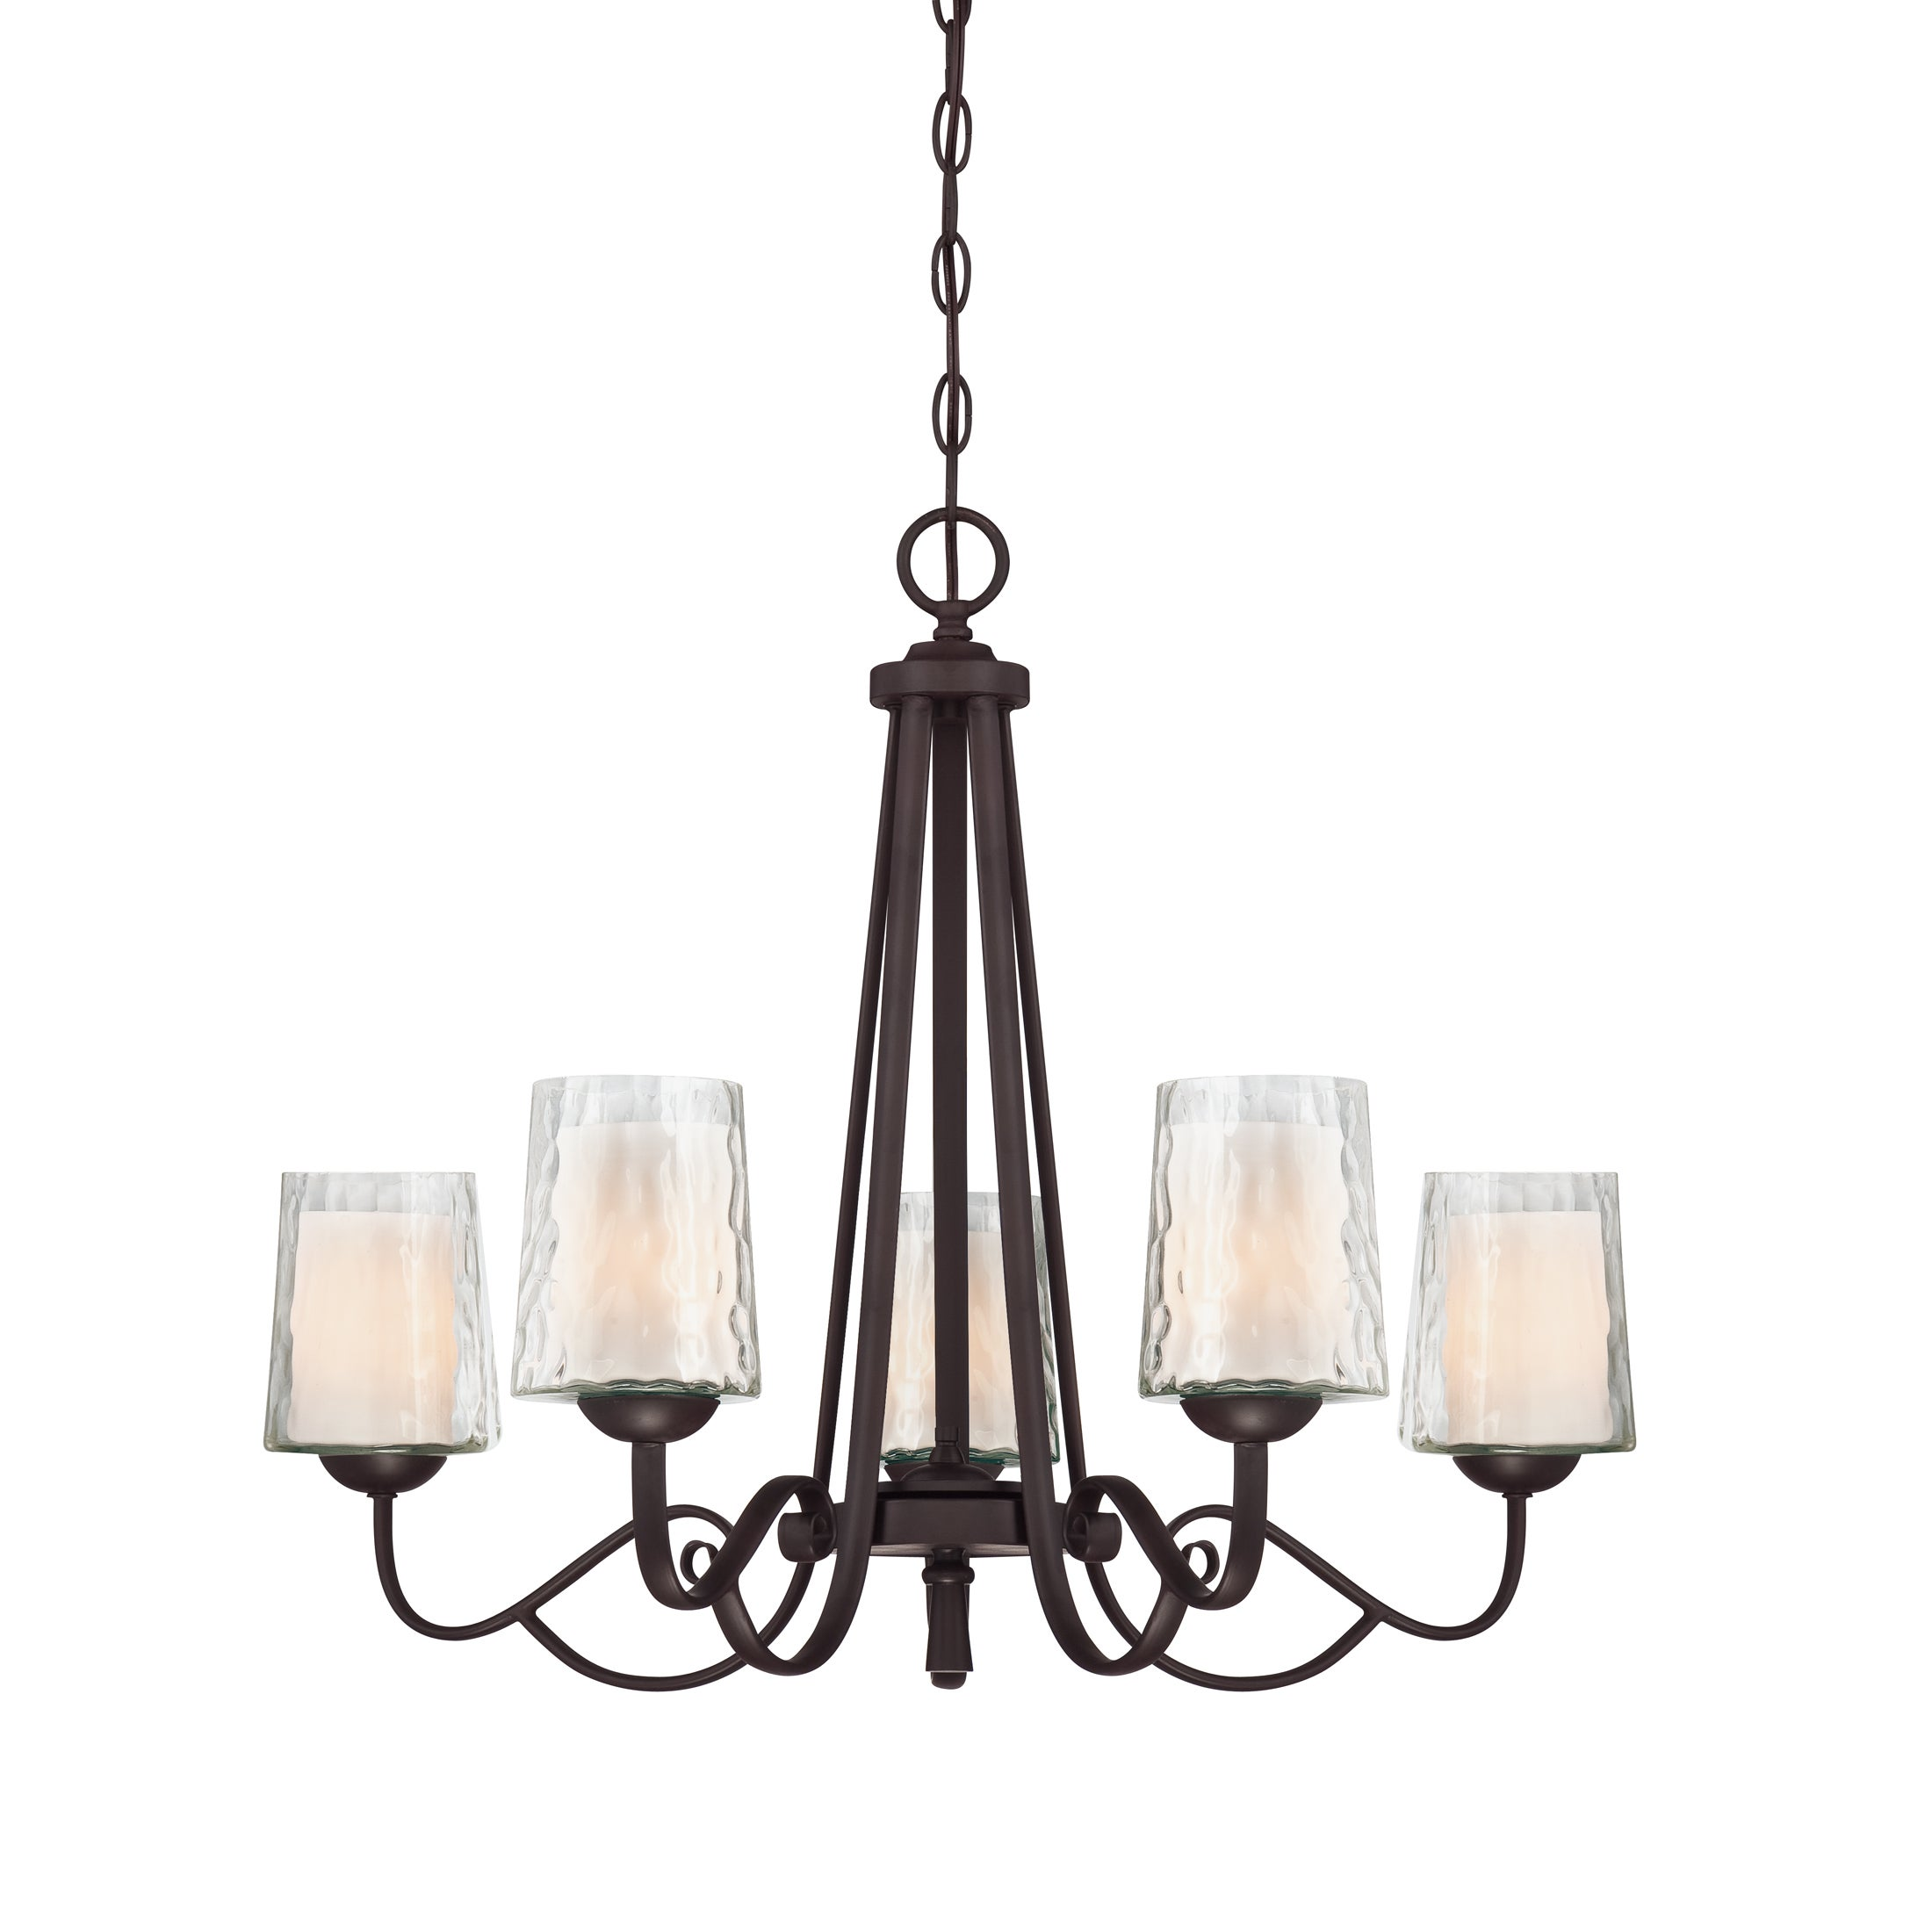 Quoizel 'Adonis' Five-light Chandelier